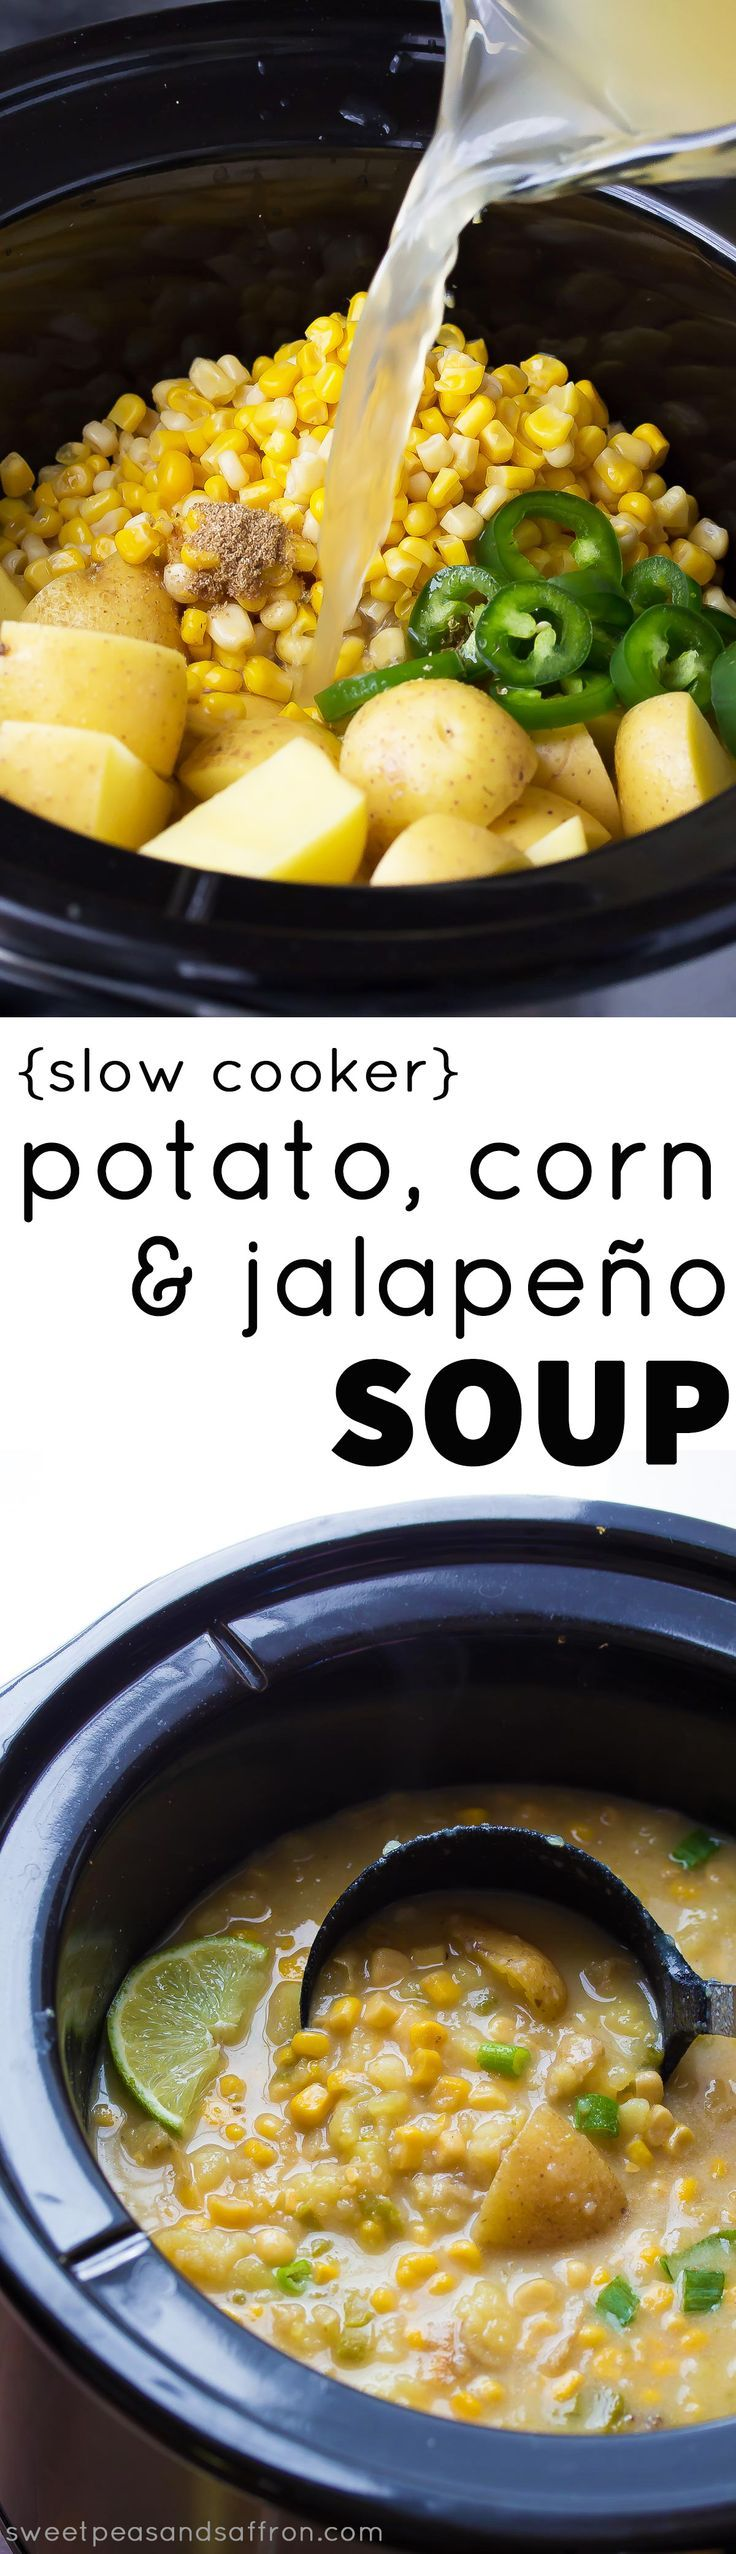 An easy and healthy vegan slow cooker potato corn soup recipe with jalapenos. It's so creamy, you'll never believe there are only 160 calories per bowl!